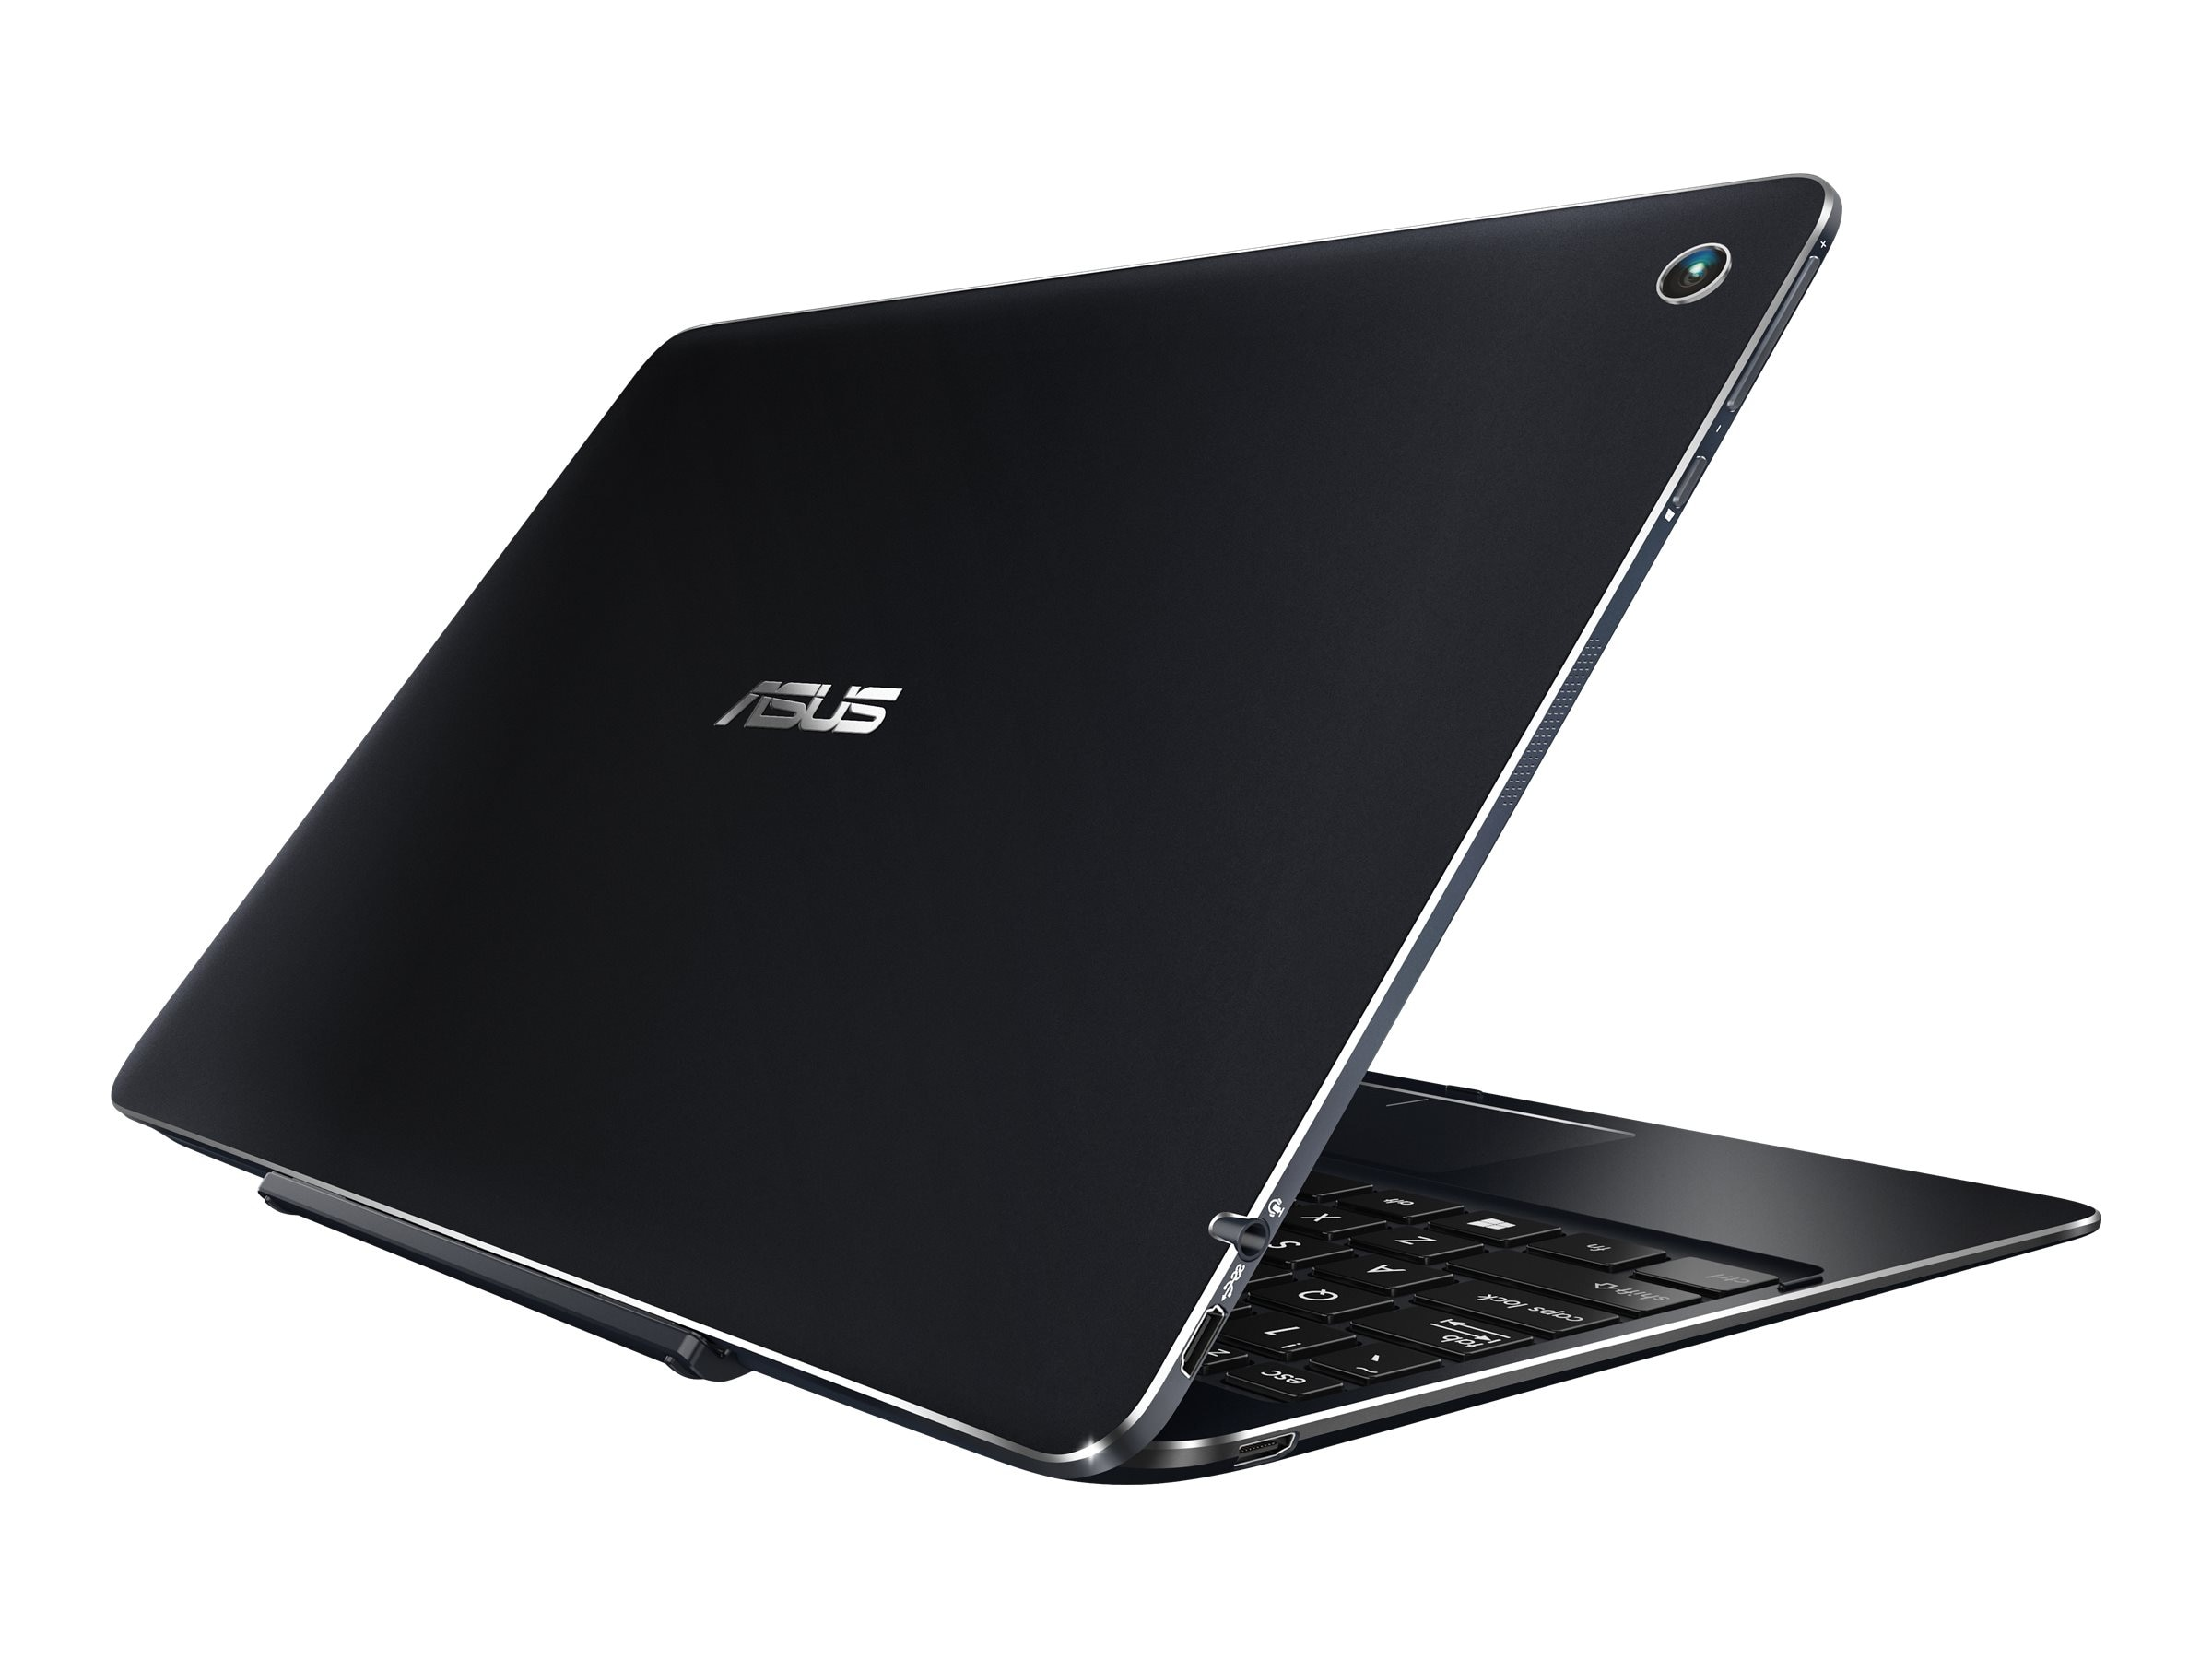 Asus T100CHIC1BKWX Image 5